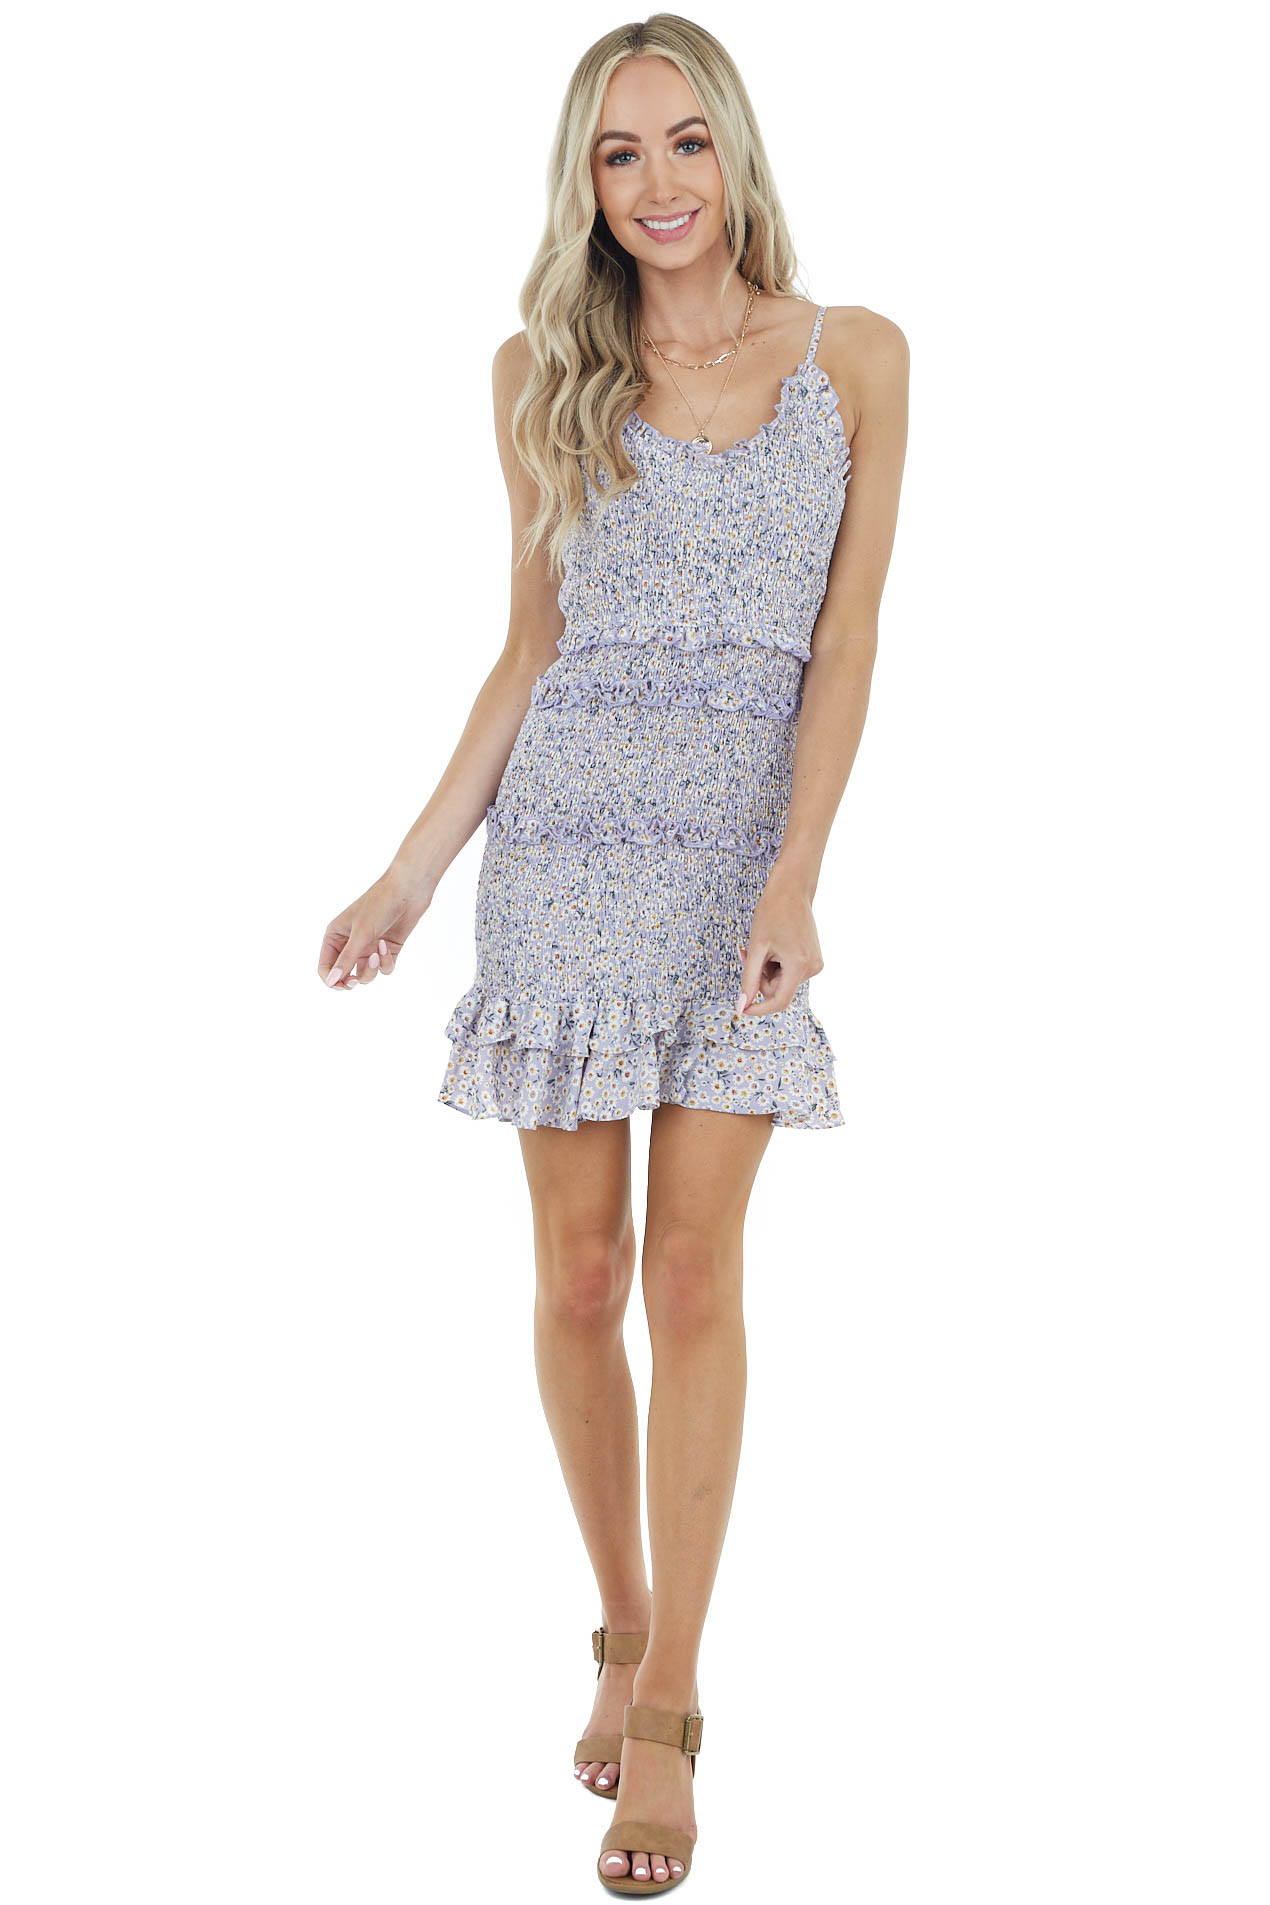 Lavender Floral Print Smocked Dress with Spaghetti Straps